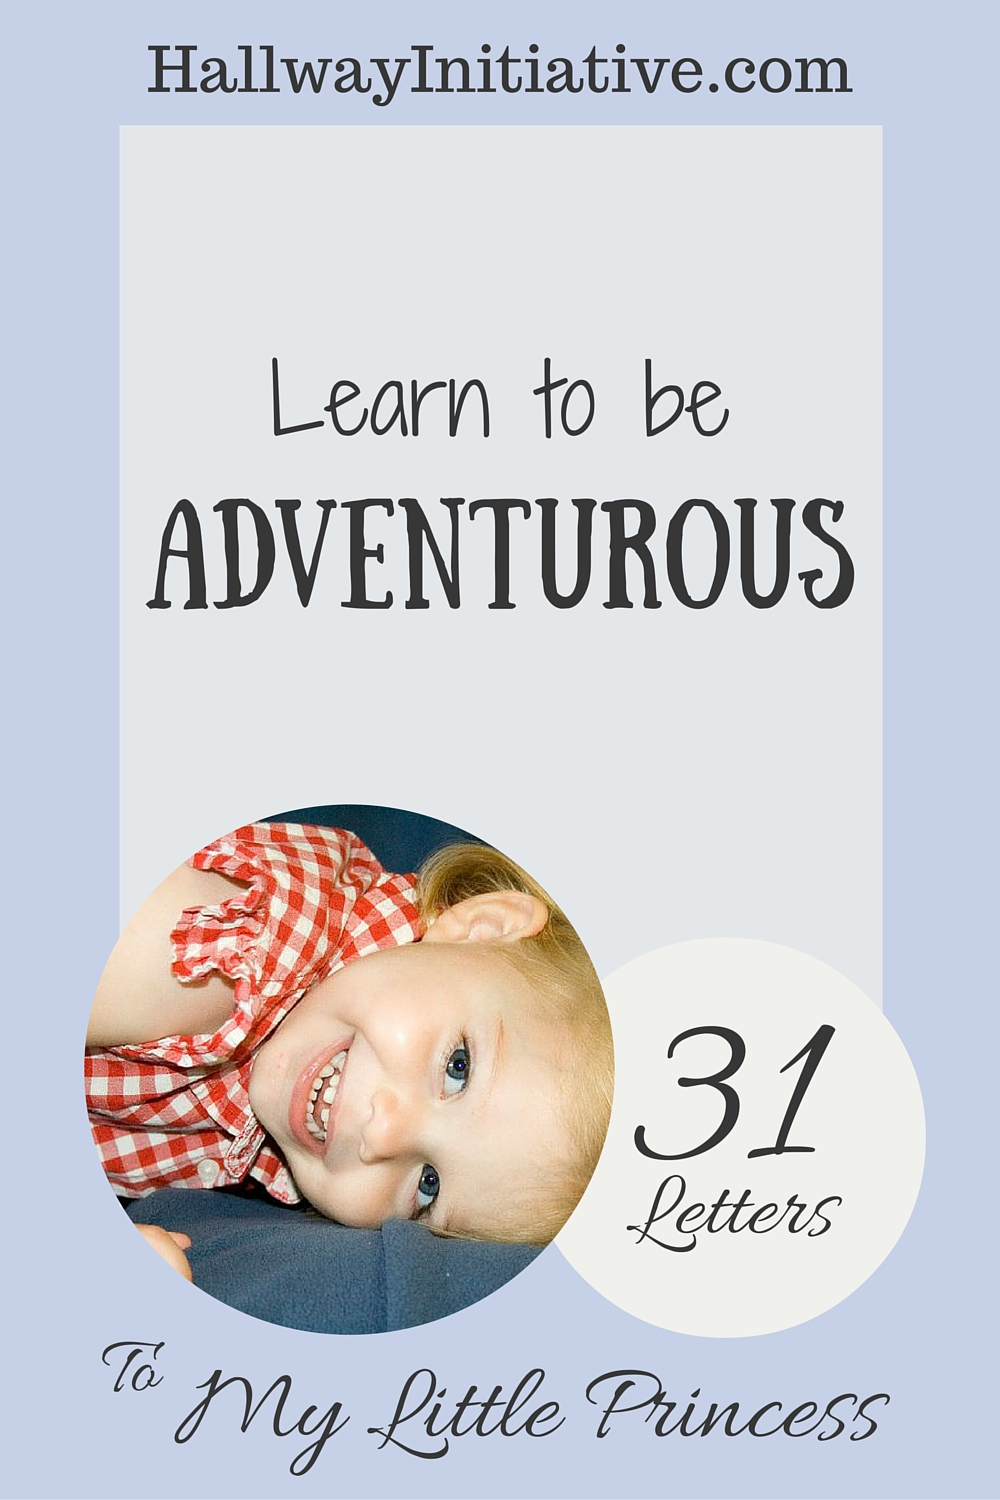 Learn to be adventurous